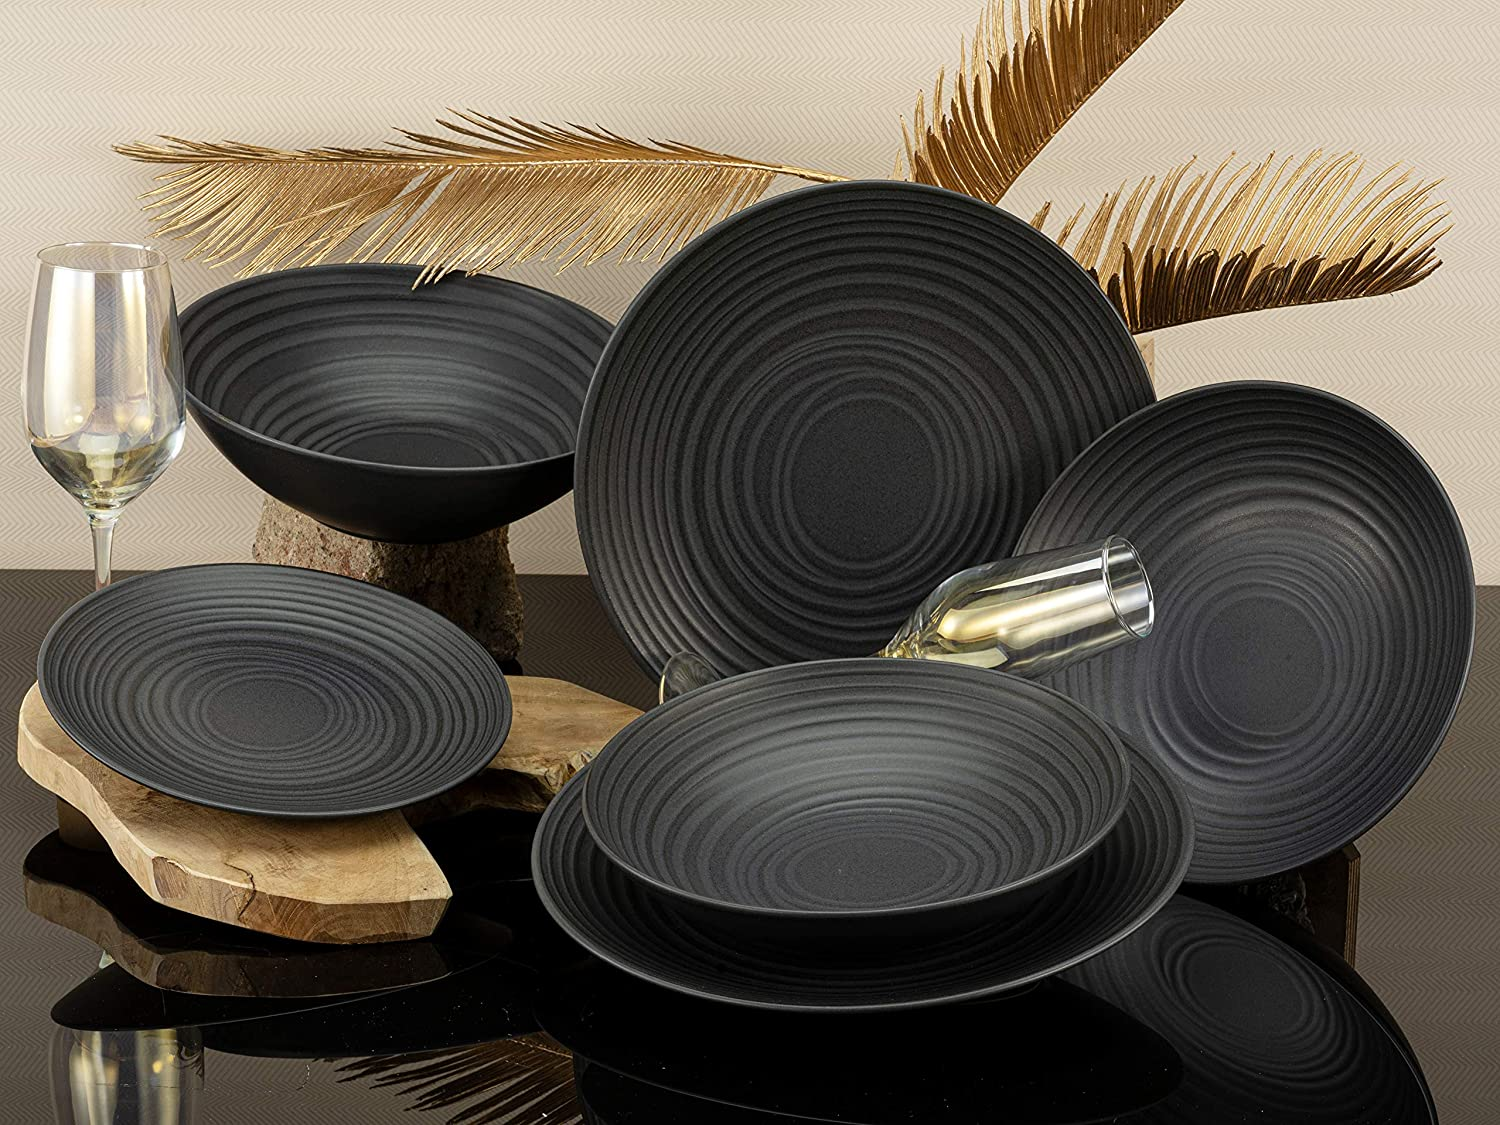 ELEMENTS Collection LAVA STONE series CreaTable 23205 Stoneware dinner service 12 pieces